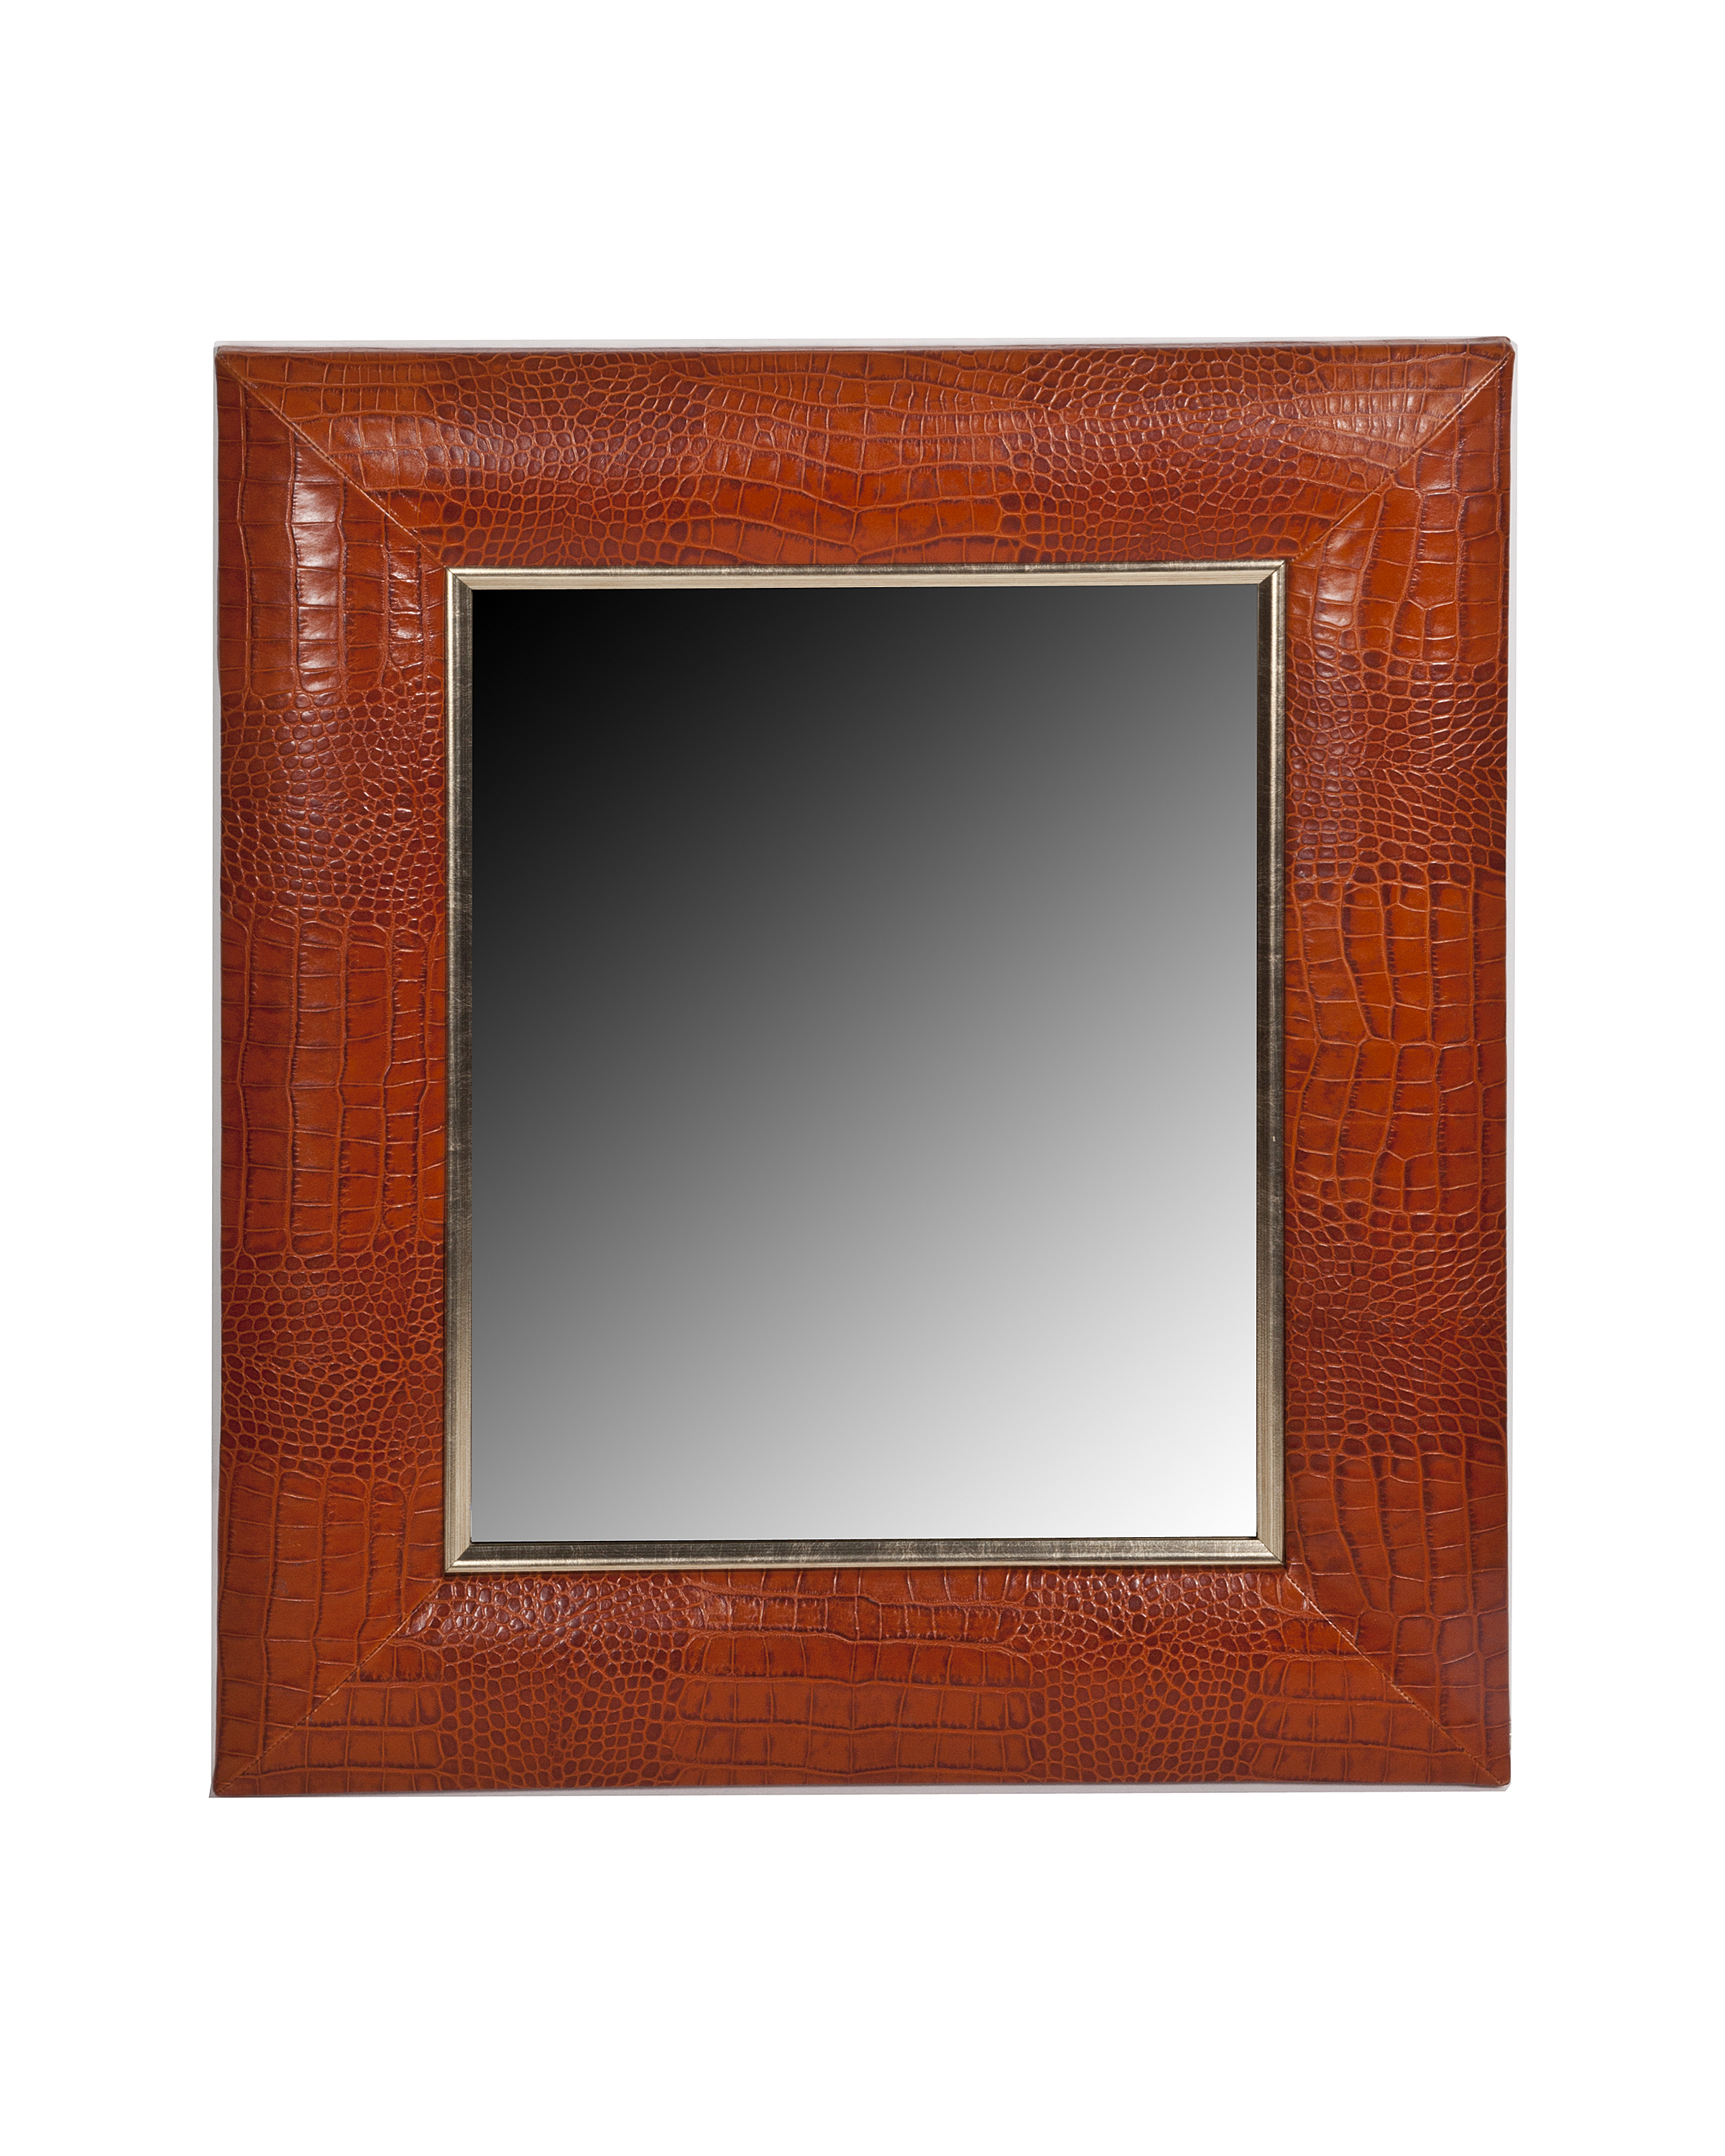 Croc Embossed Italian Leather Framed Mirror